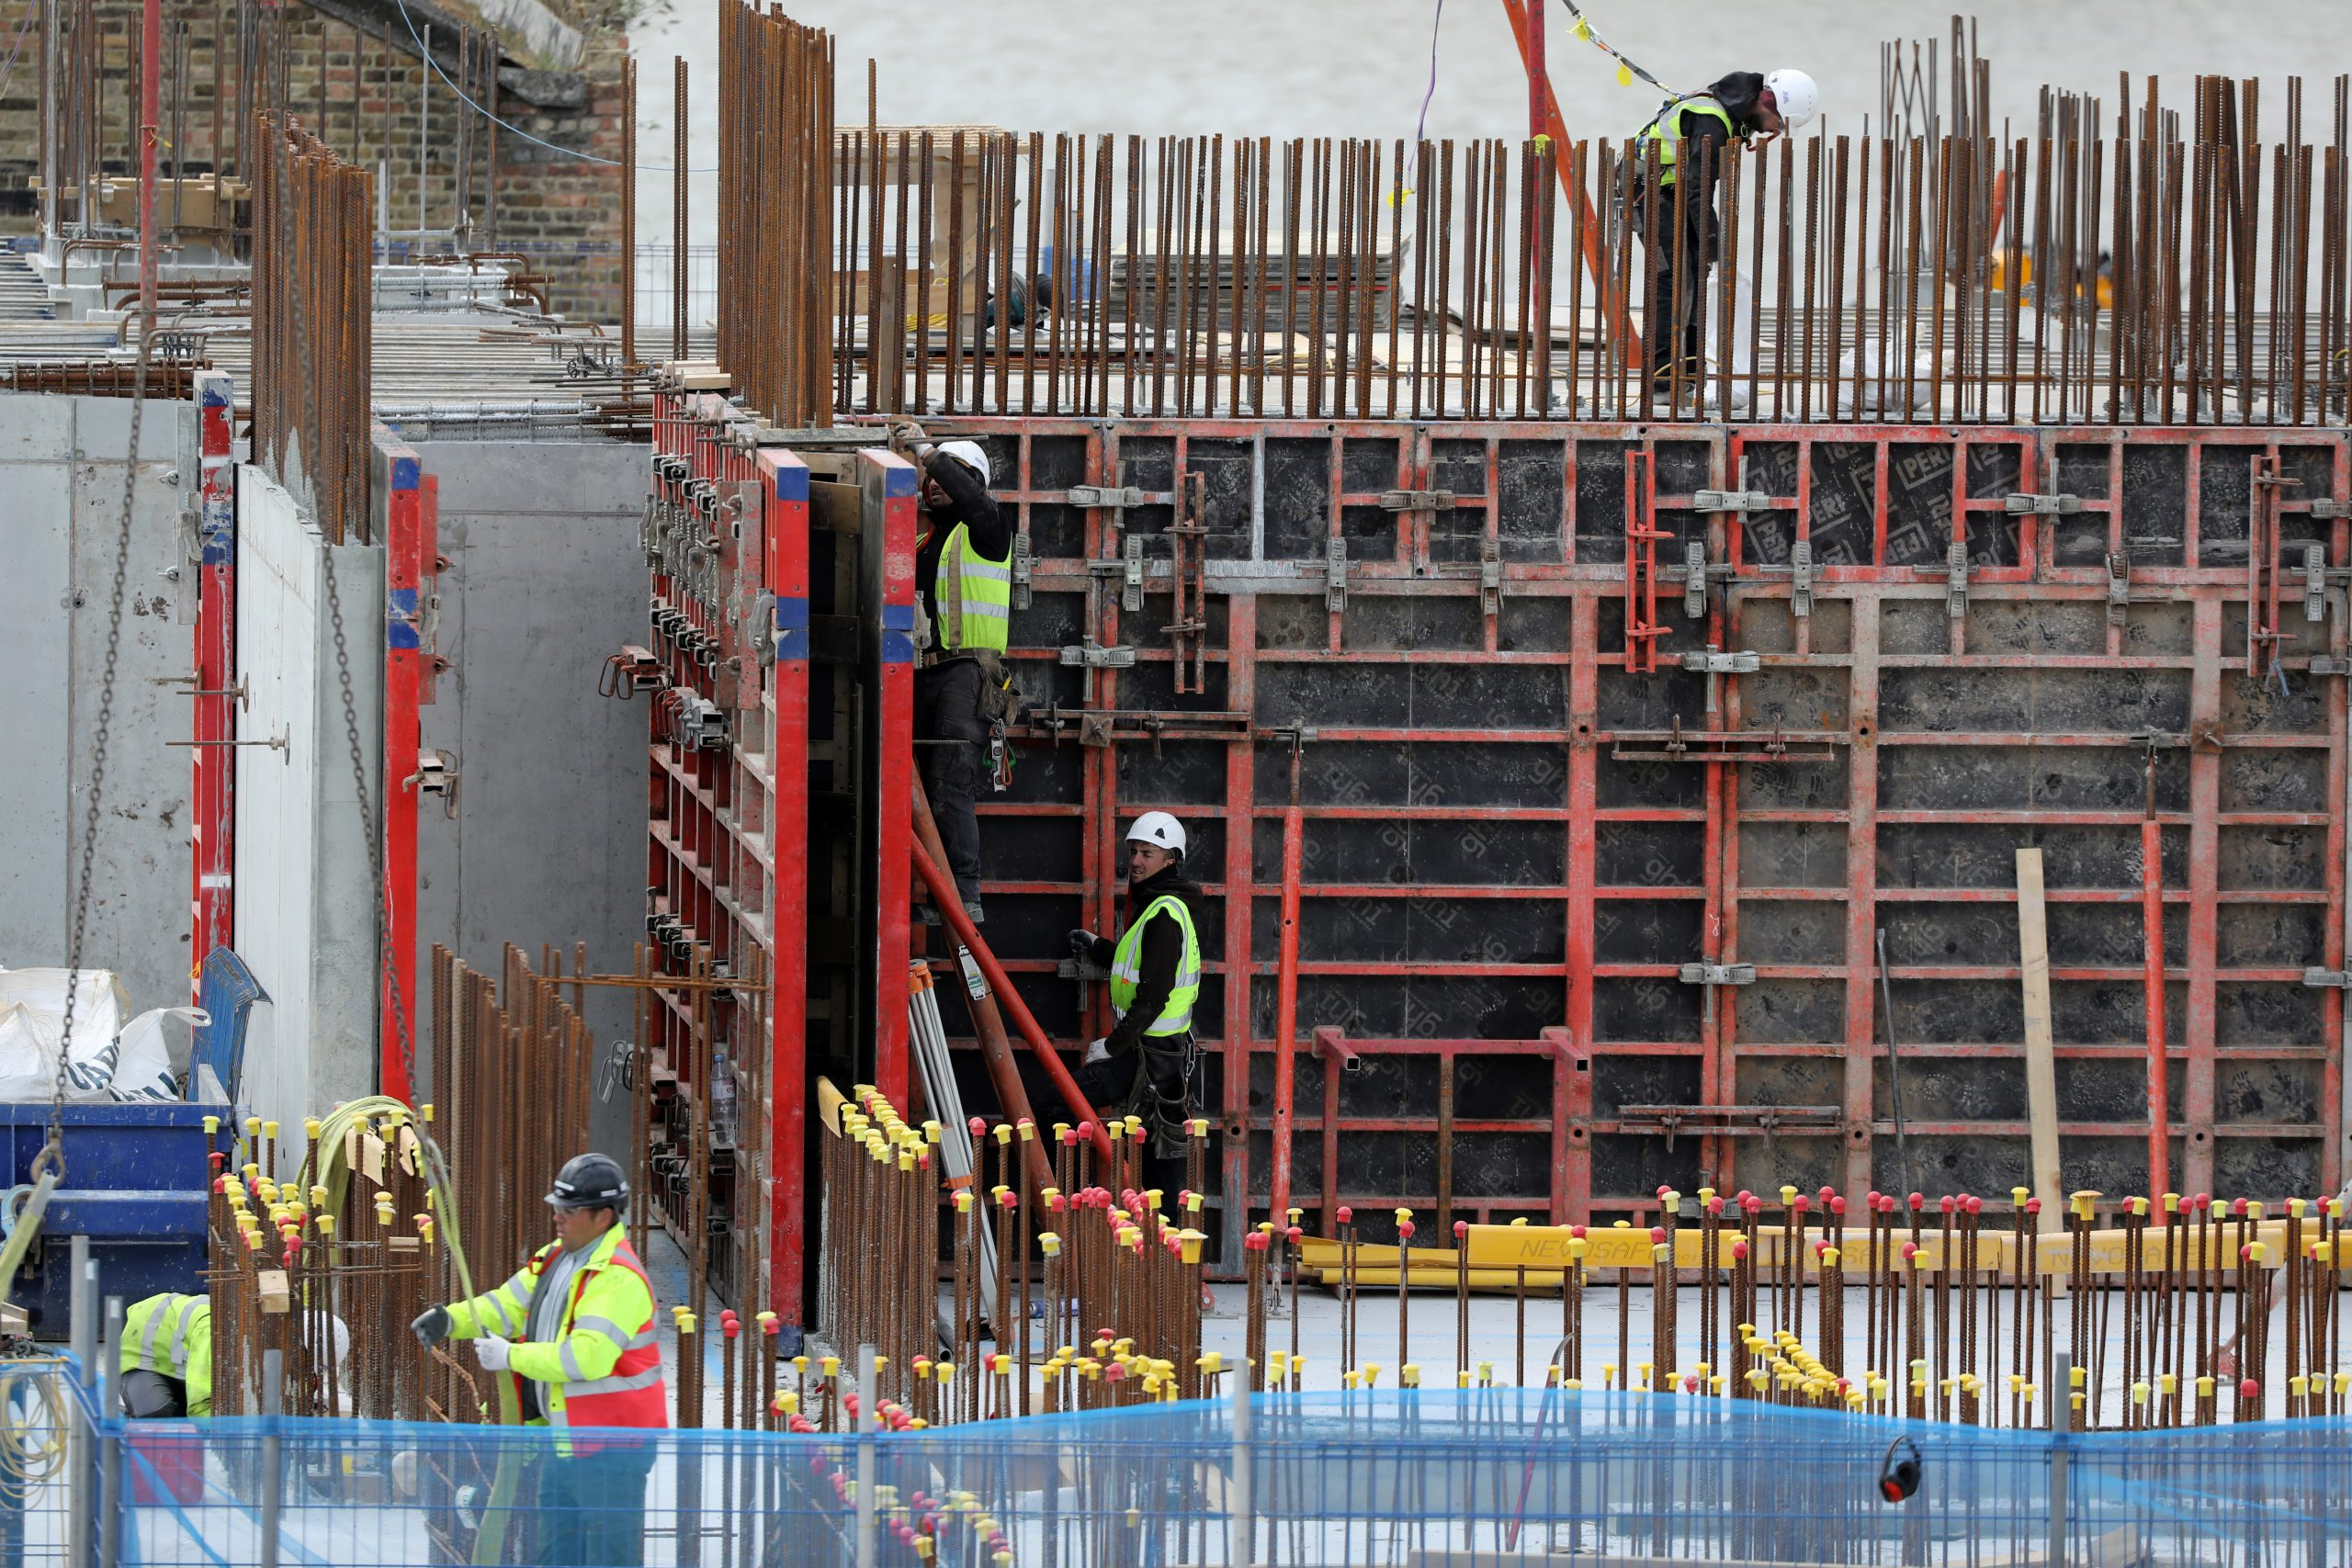 Construction workers  a site in Londonon May 11, 2020. (REUTERS/Simon Dawson)